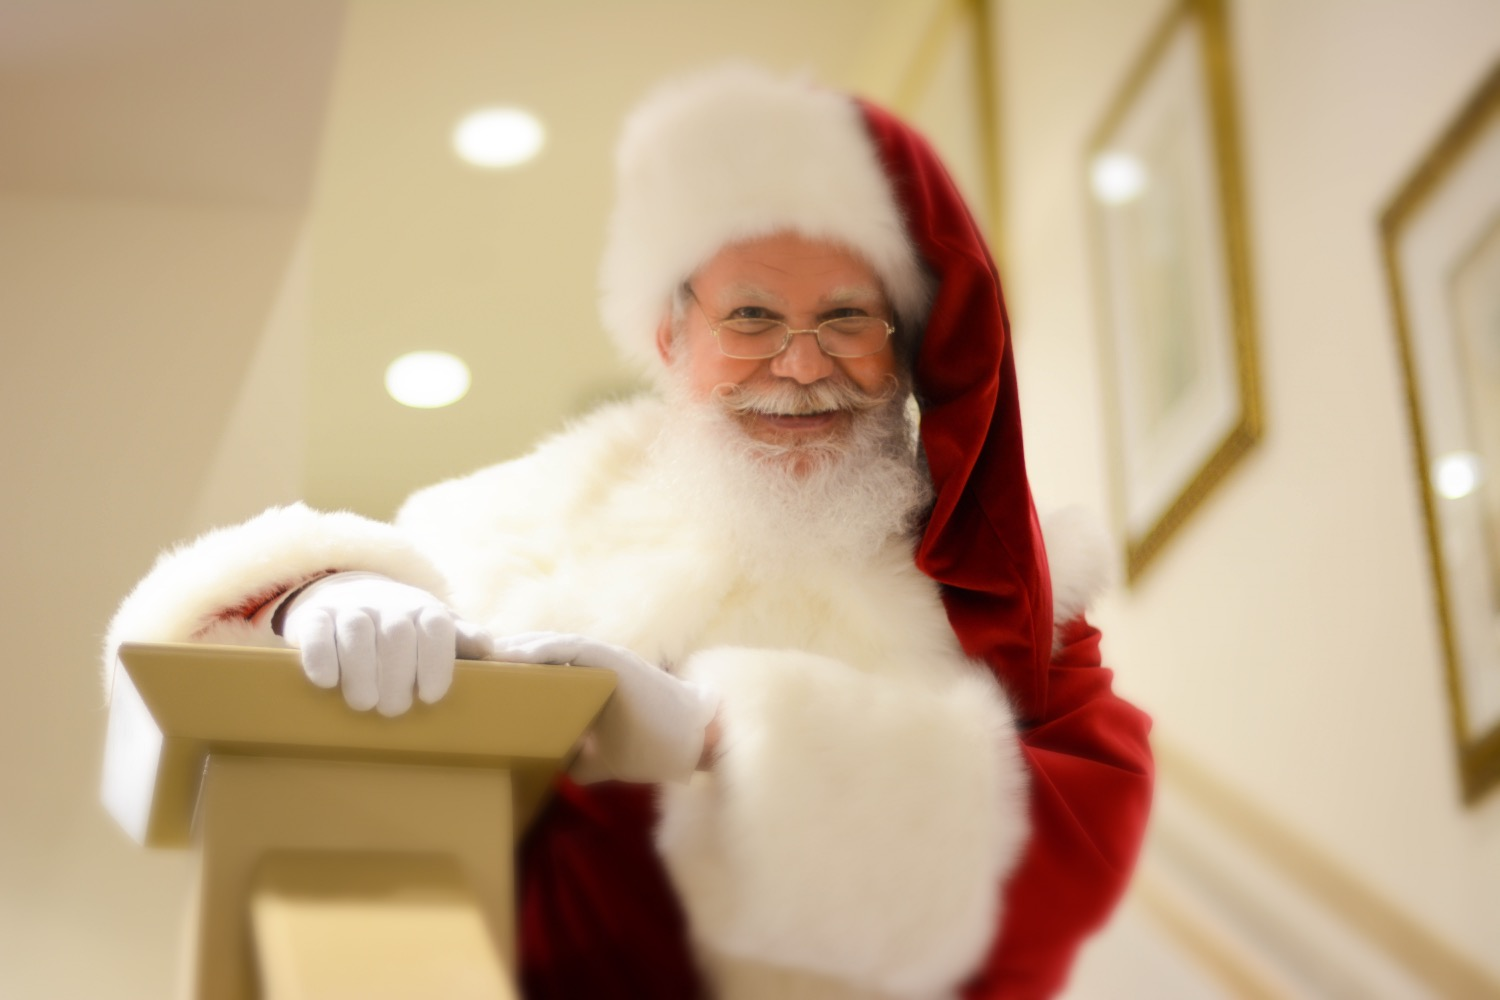 Santa's always smiling!